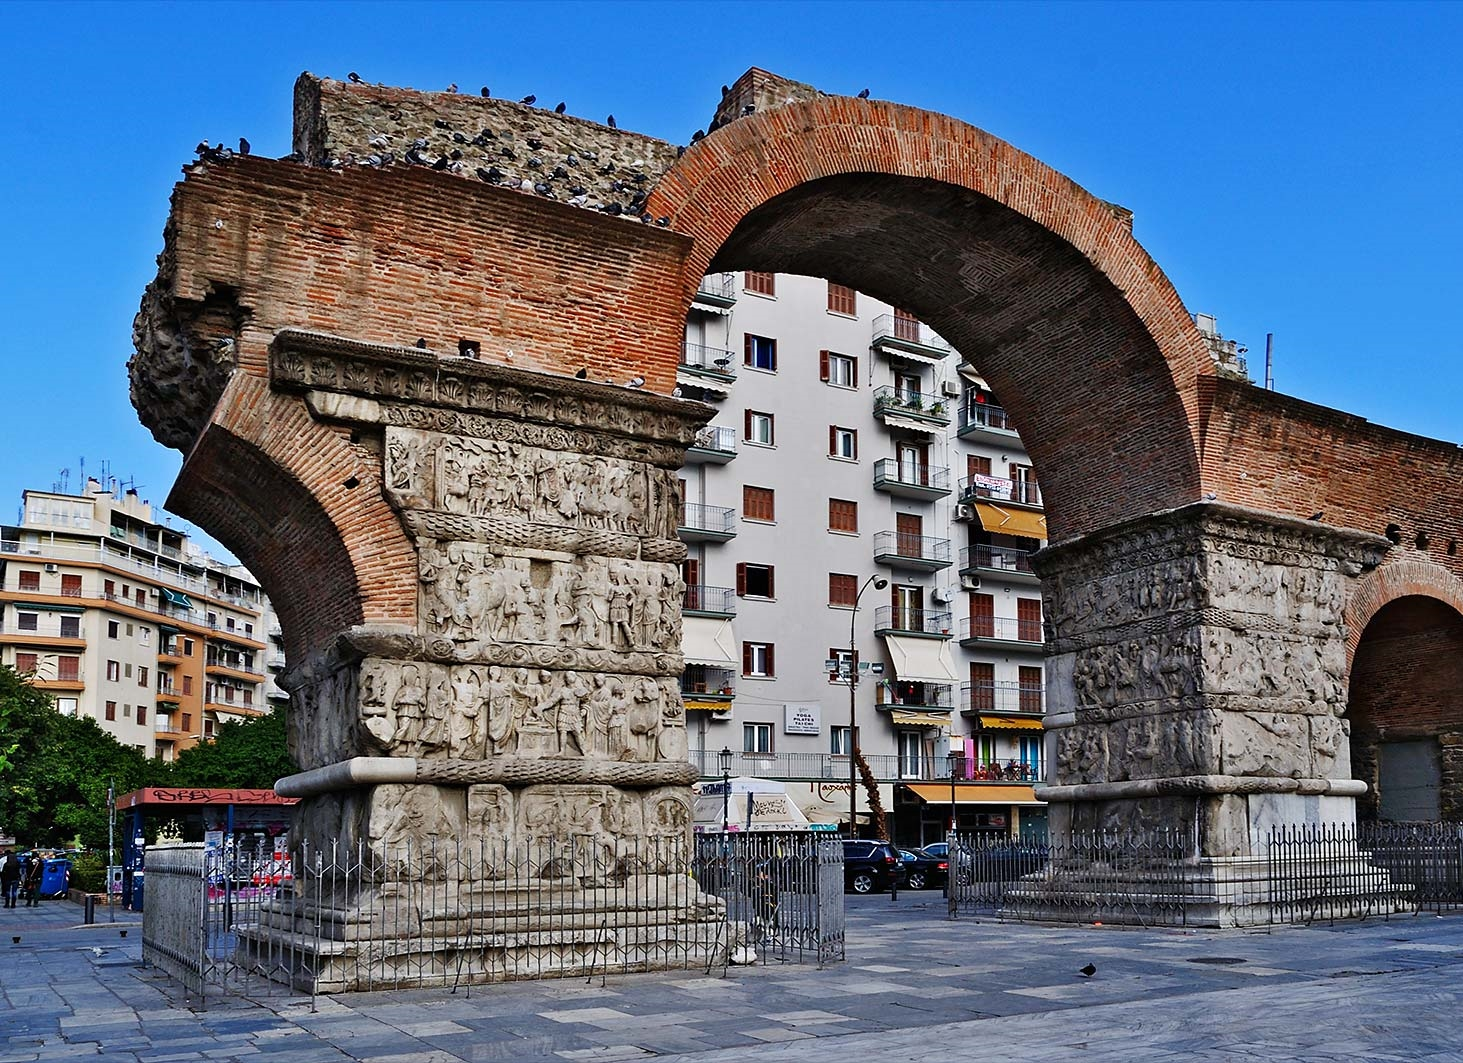 Arch of Galerius    The Arch of Galerius and the Rotunda are neighboring early 4th-century monuments in the city of Thessaloniki, in the region of Central Macedonia in northern Greece.